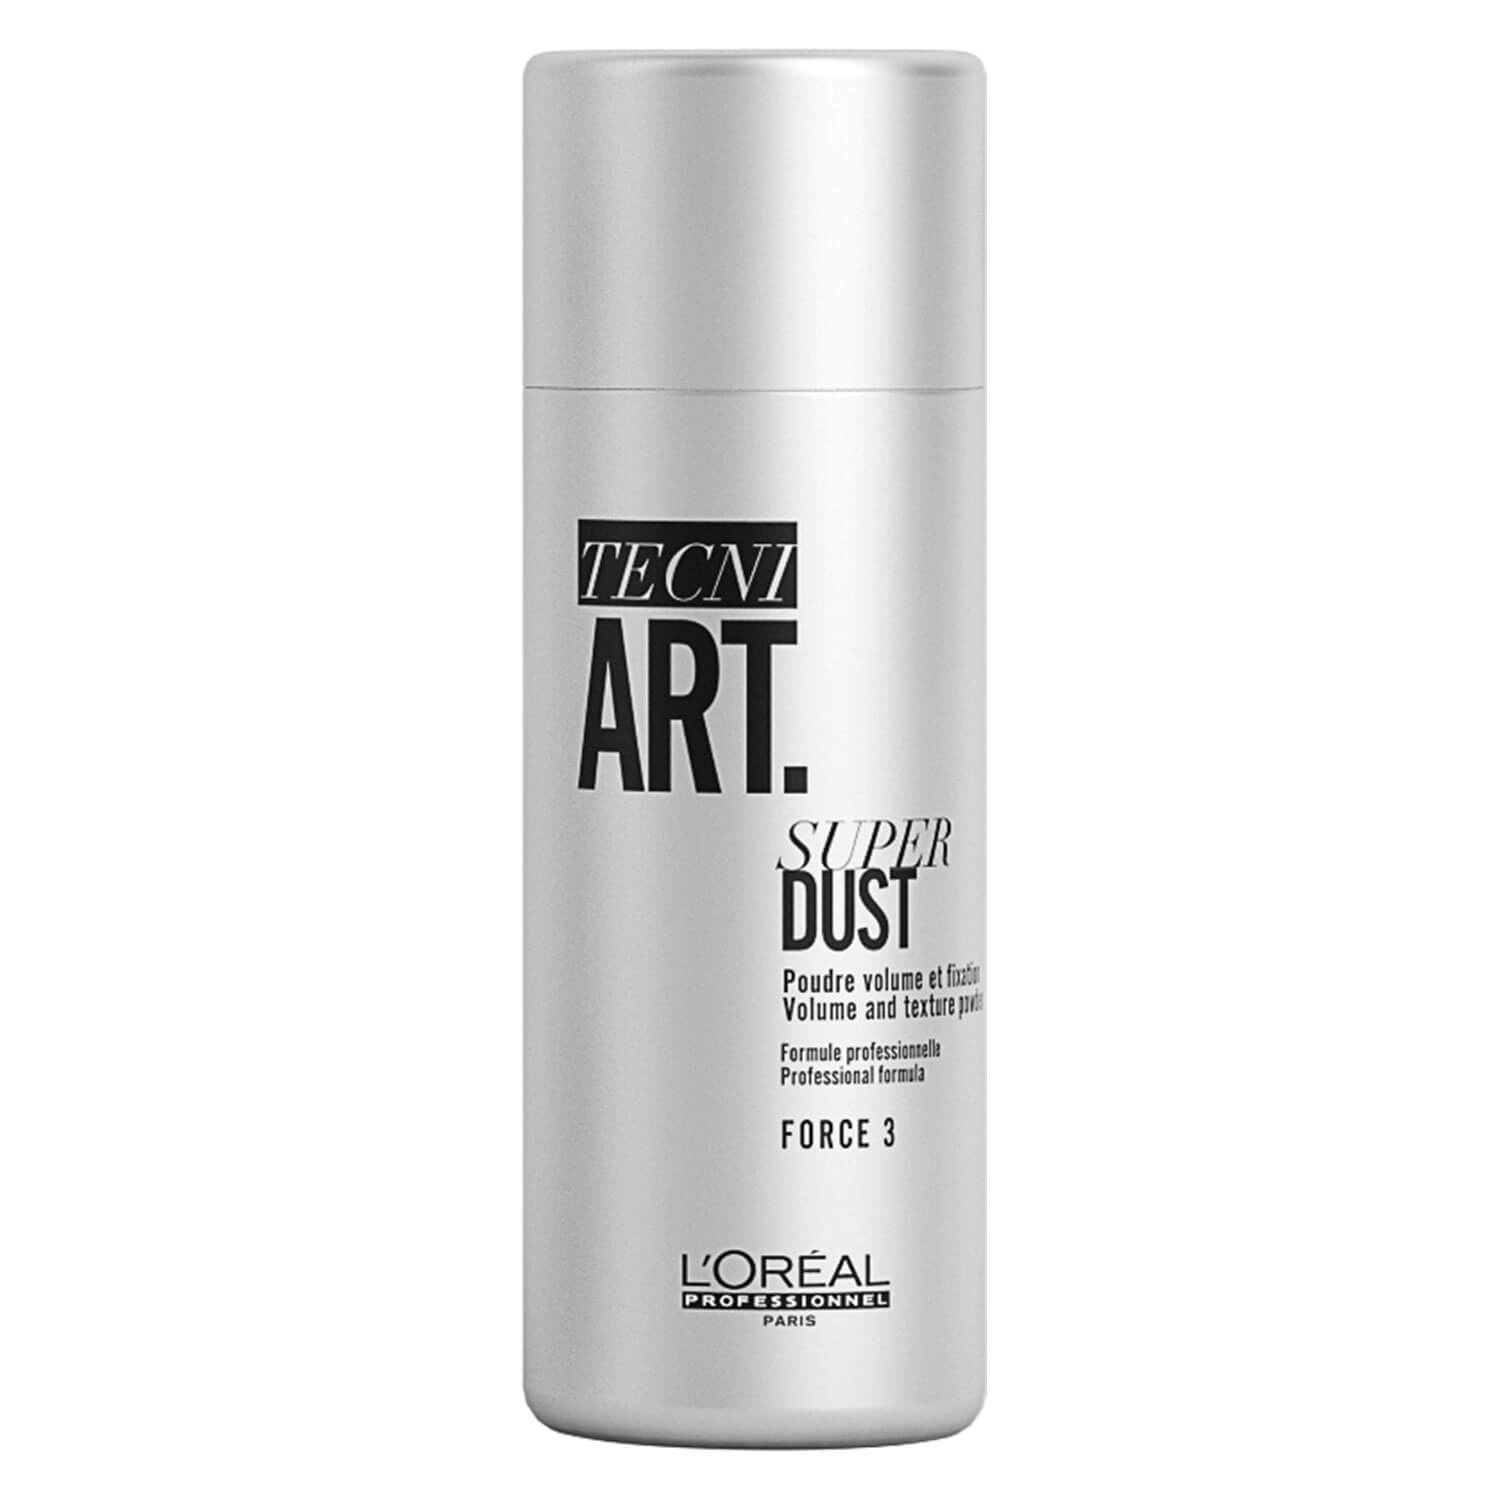 Tecni.art Texturiser - Super Dust